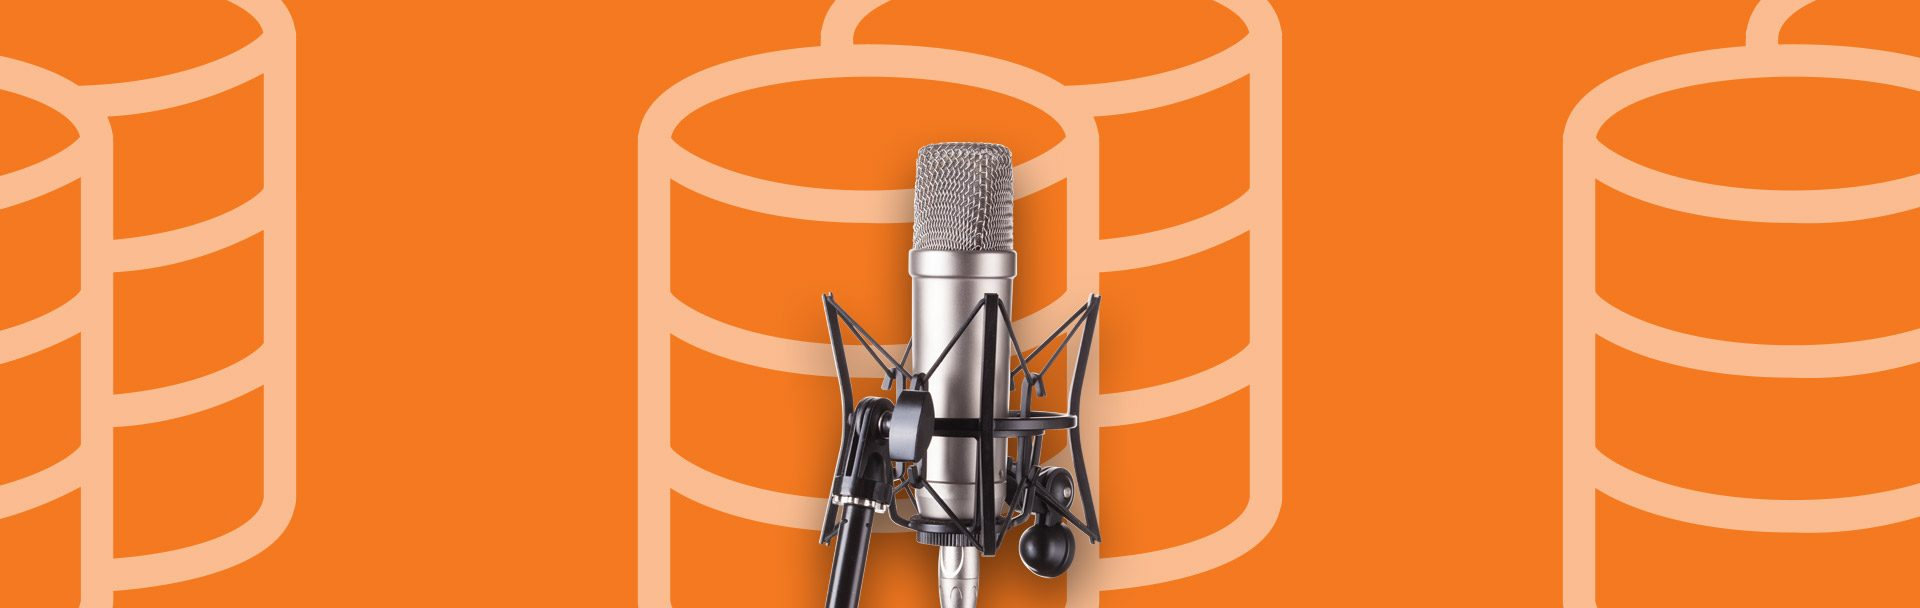 Podcast: Datawarehouse, data lake en data maturity - Hot ITem